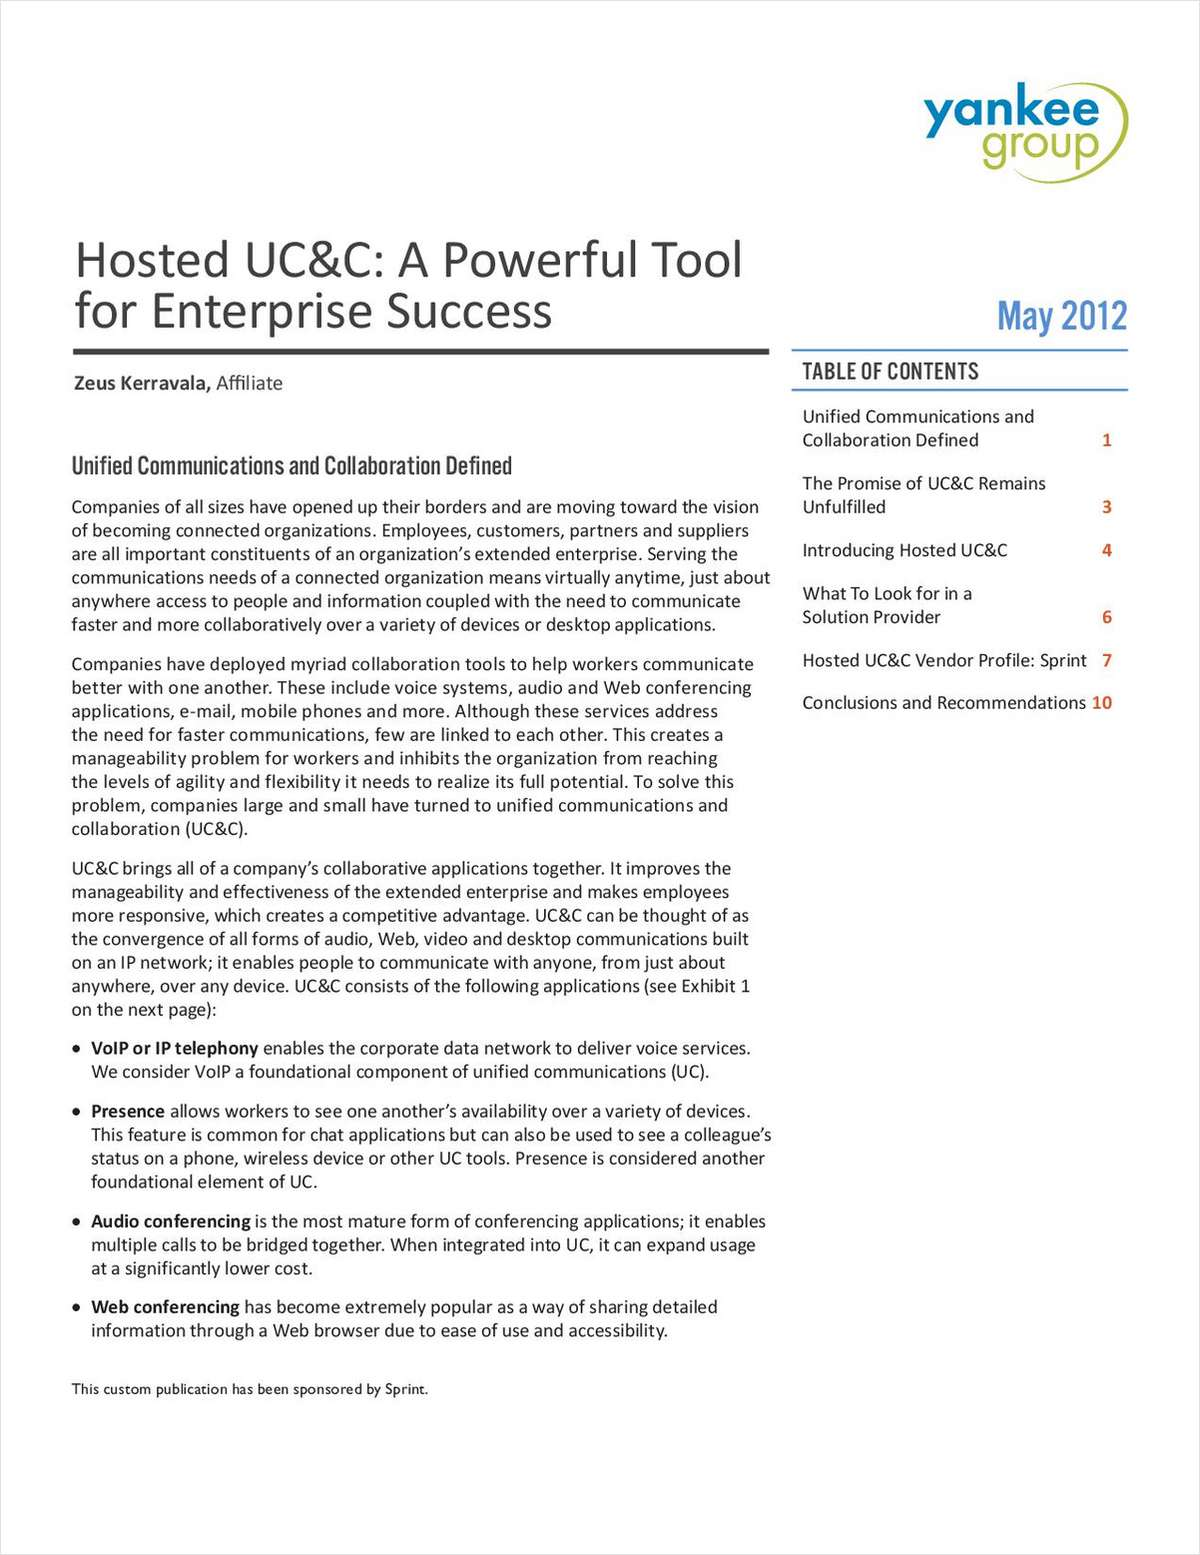 Hosted UC&C: A Powerful Tool for Enterprise Success